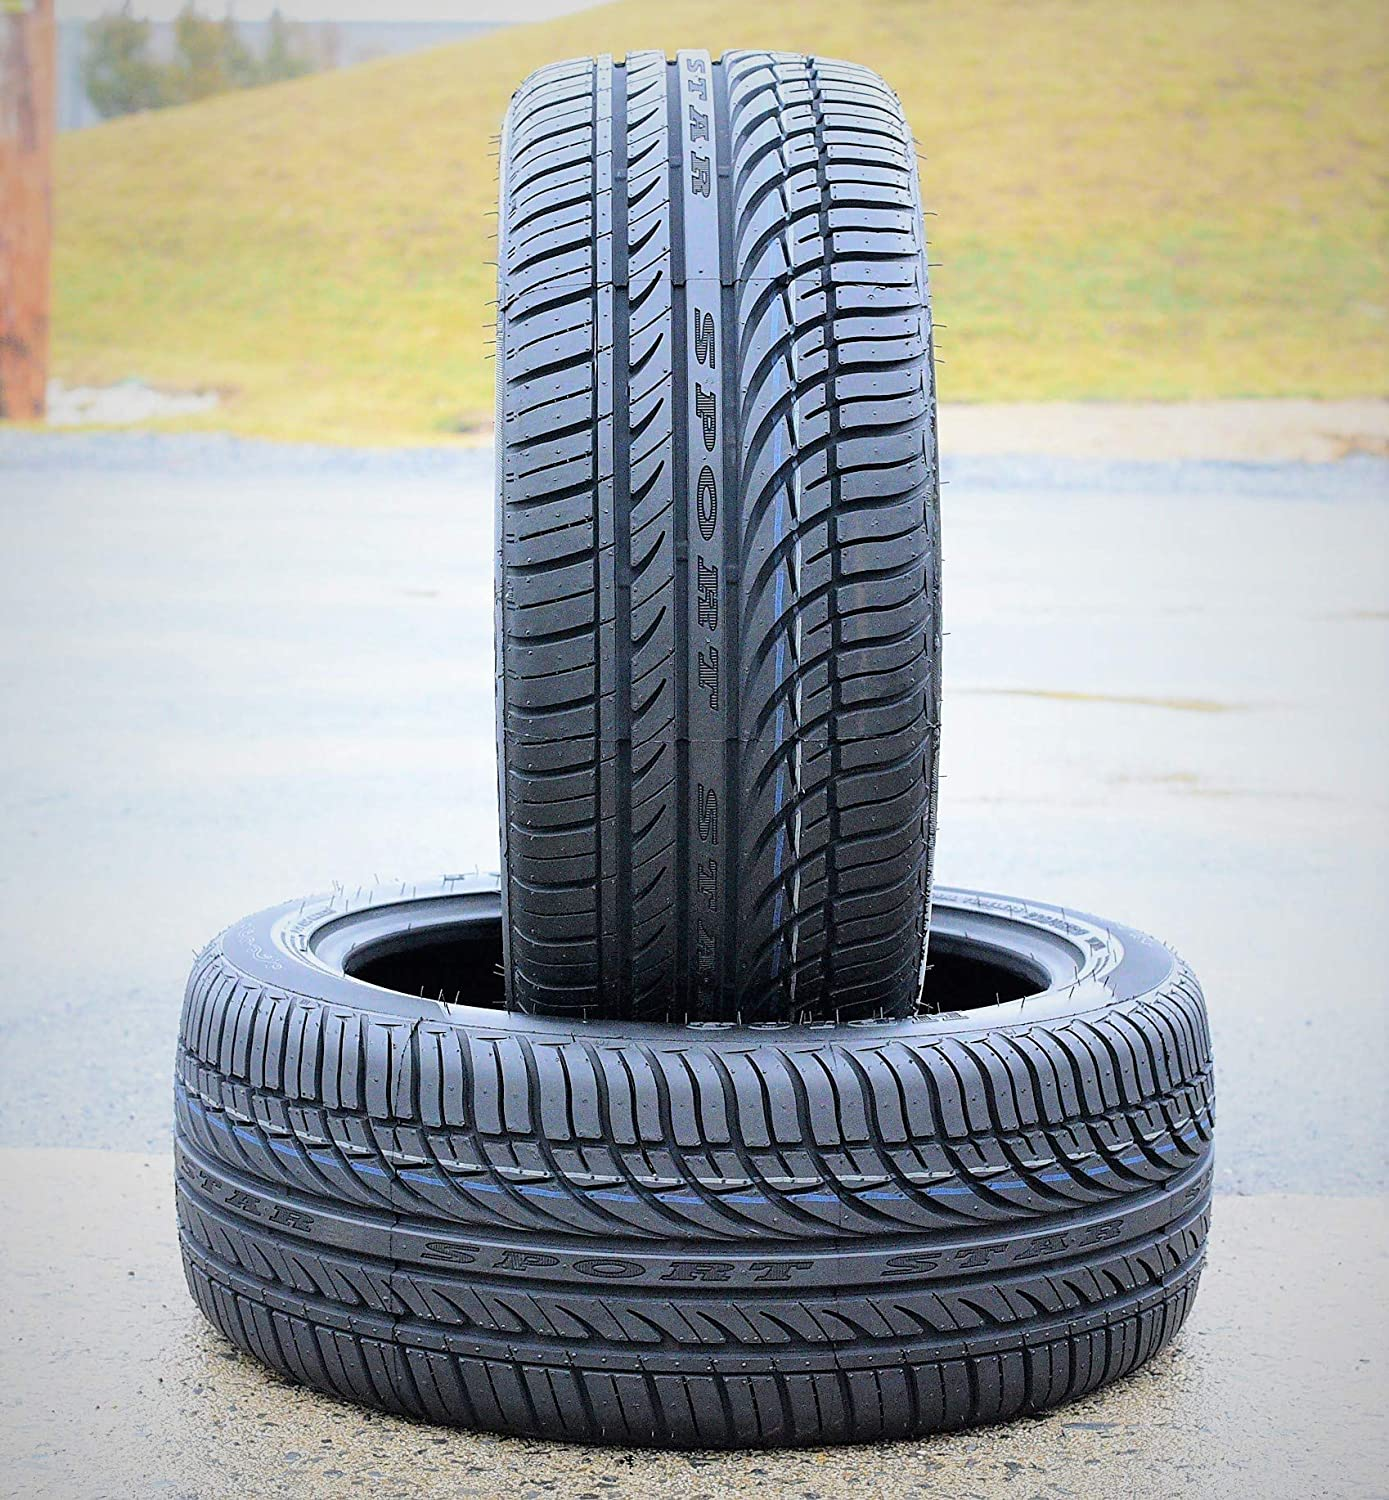 Fullway HP108 High Performance Radial Tires-215//55ZR17 98W XL TWO Set of 2